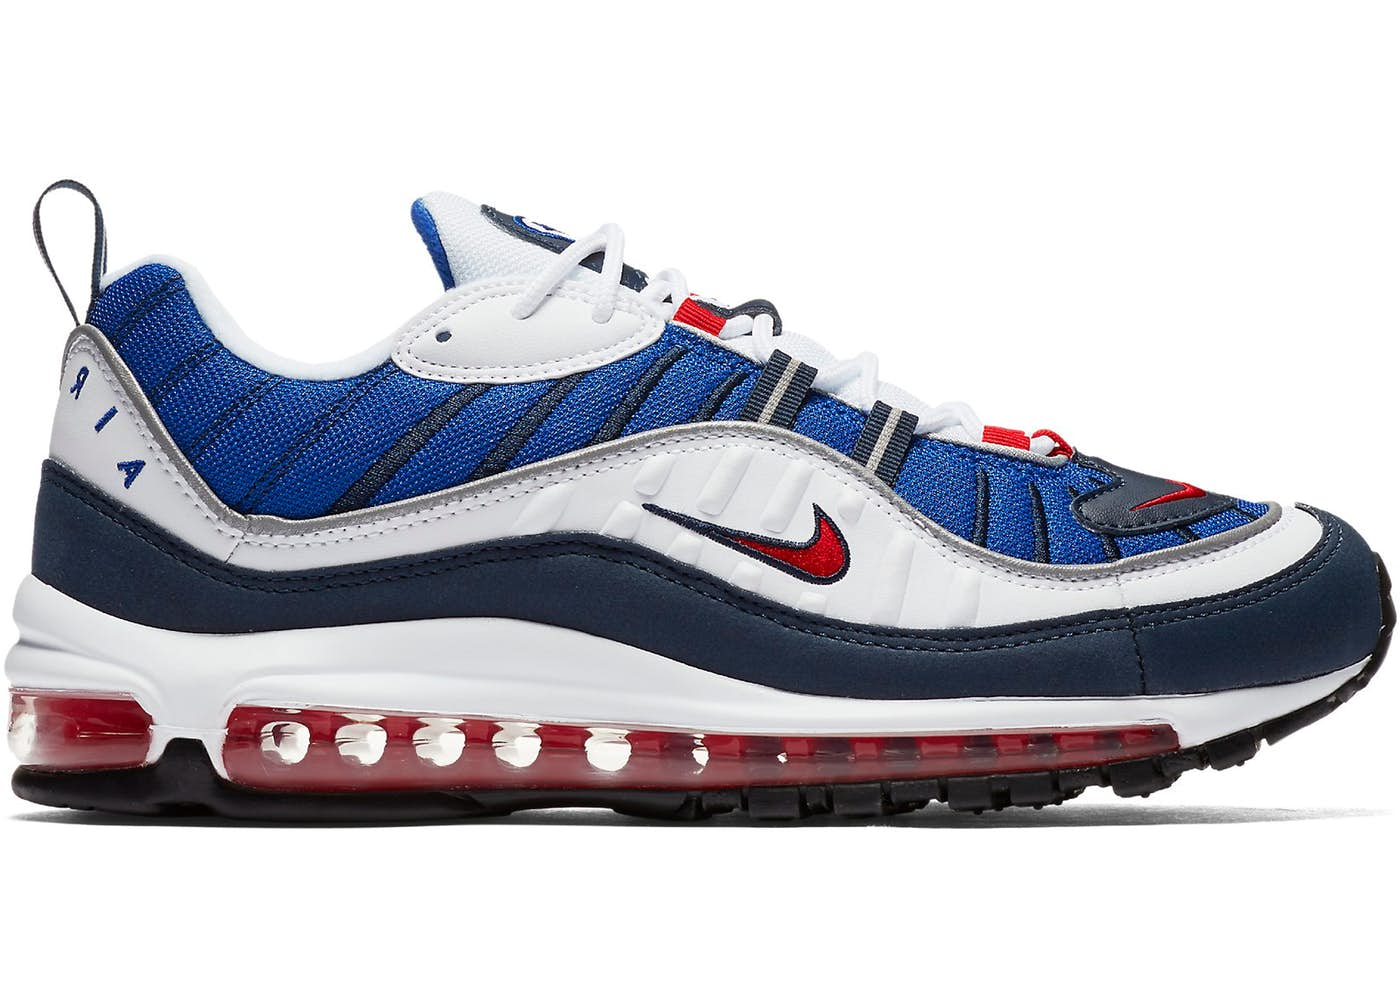 The Nike Air Max Plus was introduced in and was recognized by its eye-catching design. Like the previously released models in the Air Max line, this runner is equipped with visible air units.